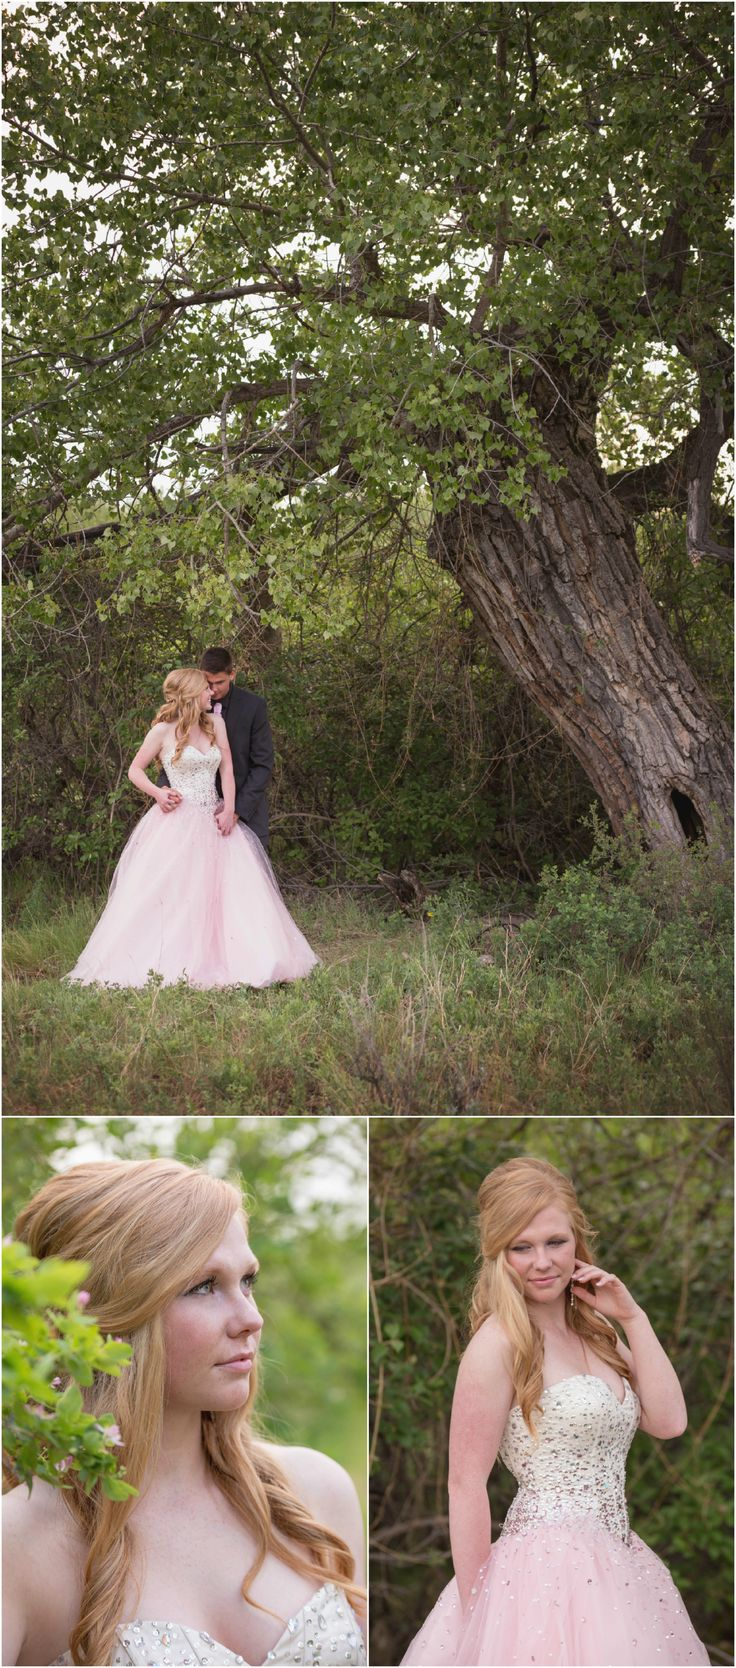 High School Graduation 2015 Highlights | Medicine Hat Photography.  Photo ideas for grad student in pink grad dress with crystals for prom with her date in the trees. Taken by Woods Photography (CANADA).  #graduation #prom #photography